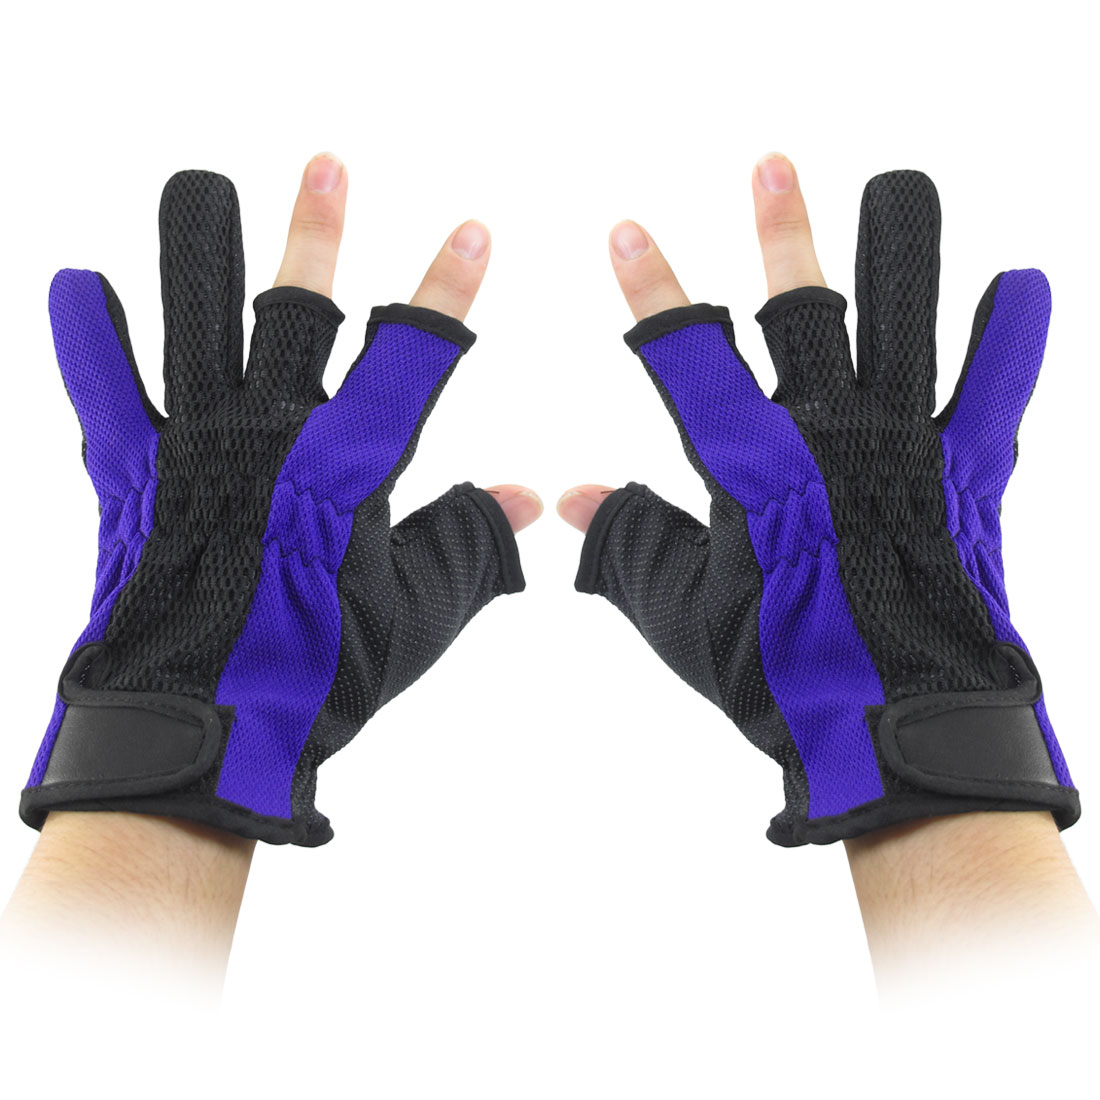 Nonslip Detachable Closure Two Finger Fishing Protector Gloves Royal Blue Black